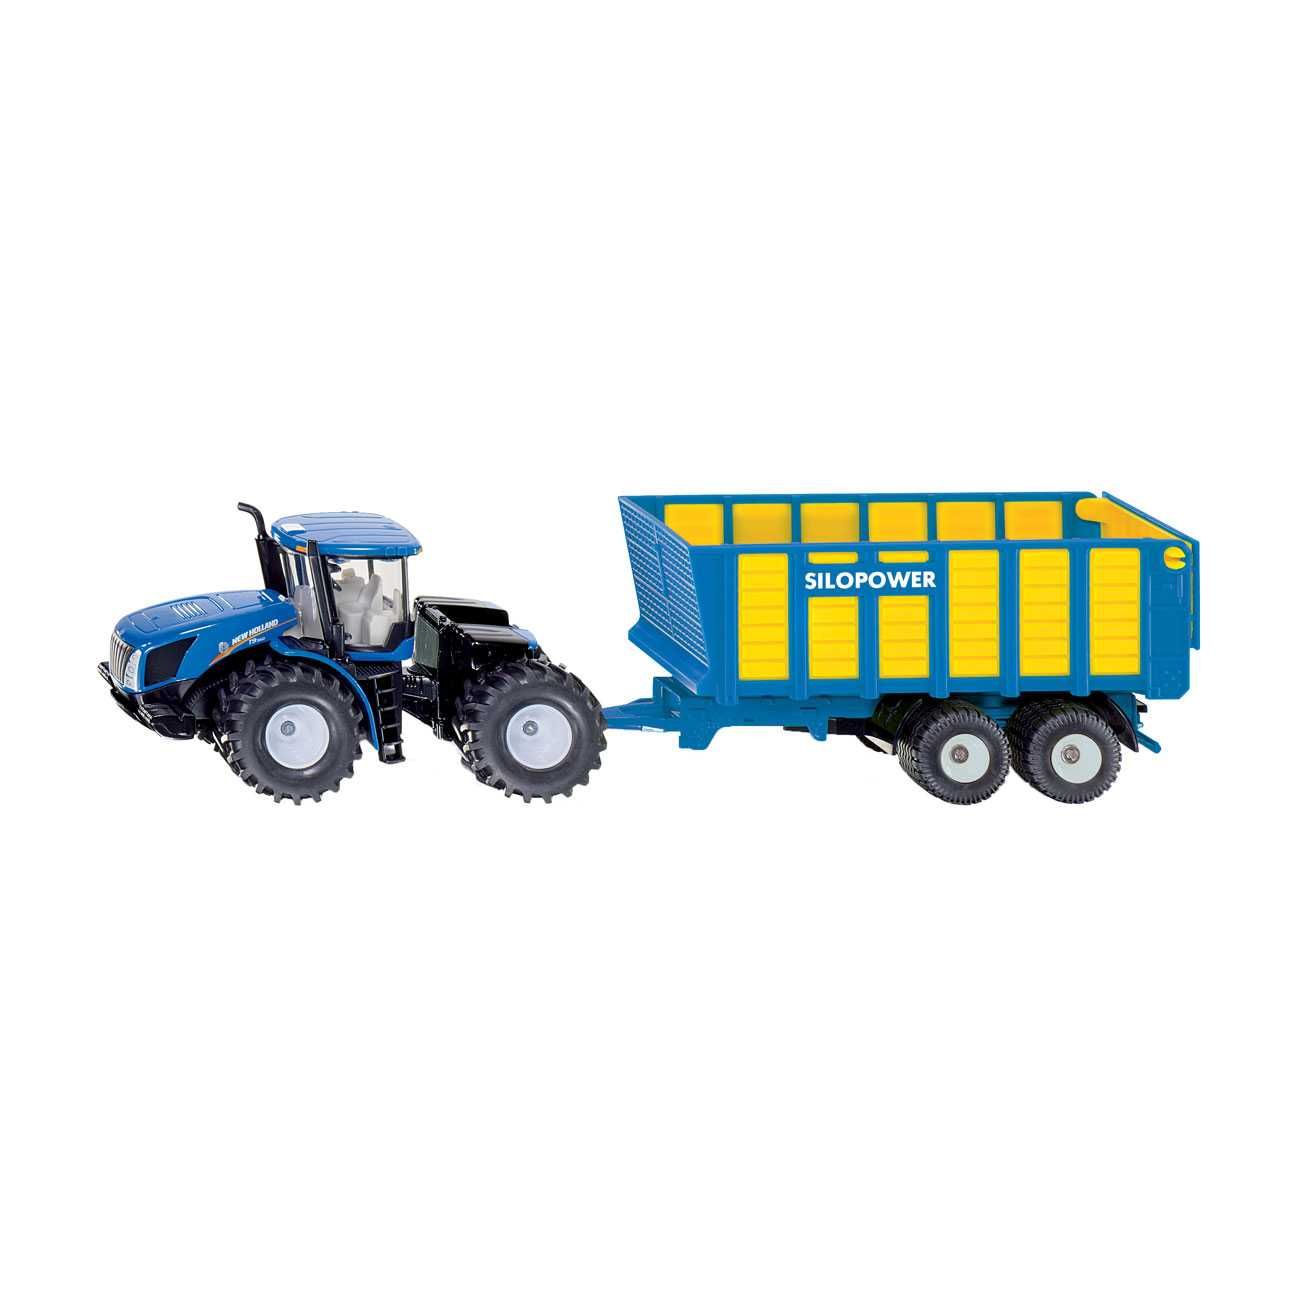 TRACTOR WITH SILAGE TRAILER